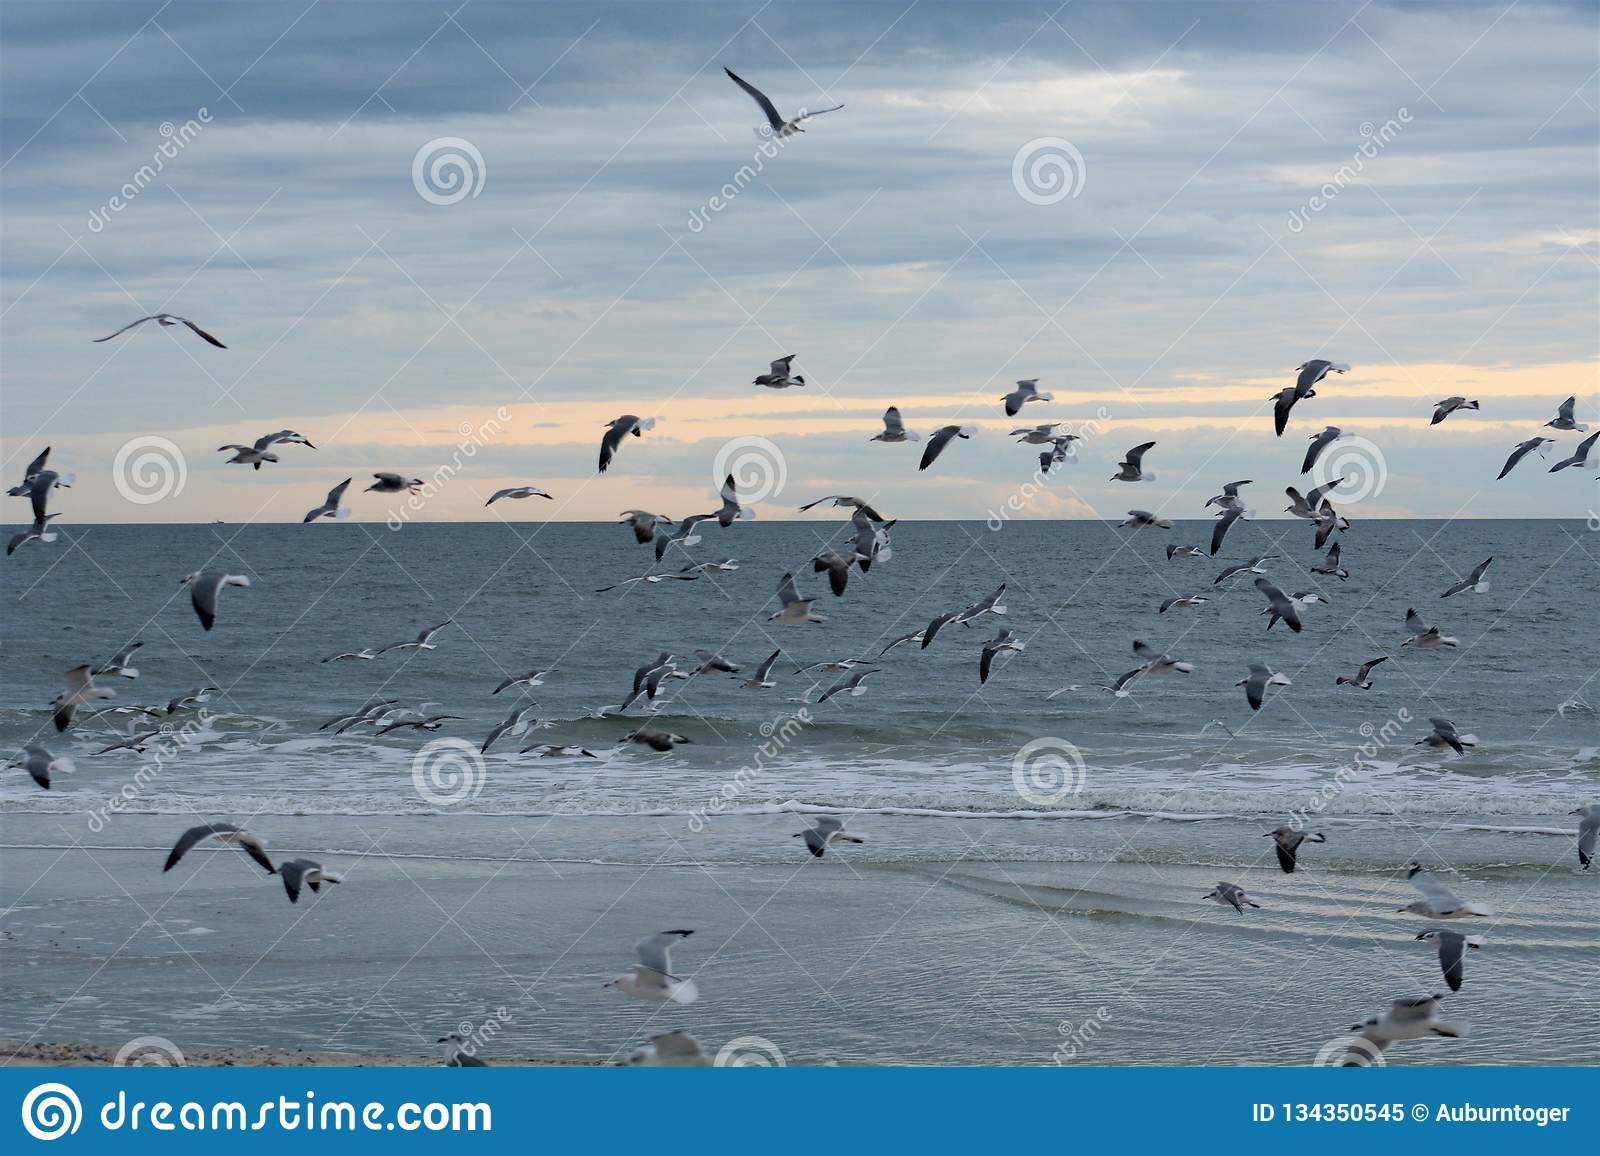 Seagulls Fly With The Flock On The Island Beach Stock Image